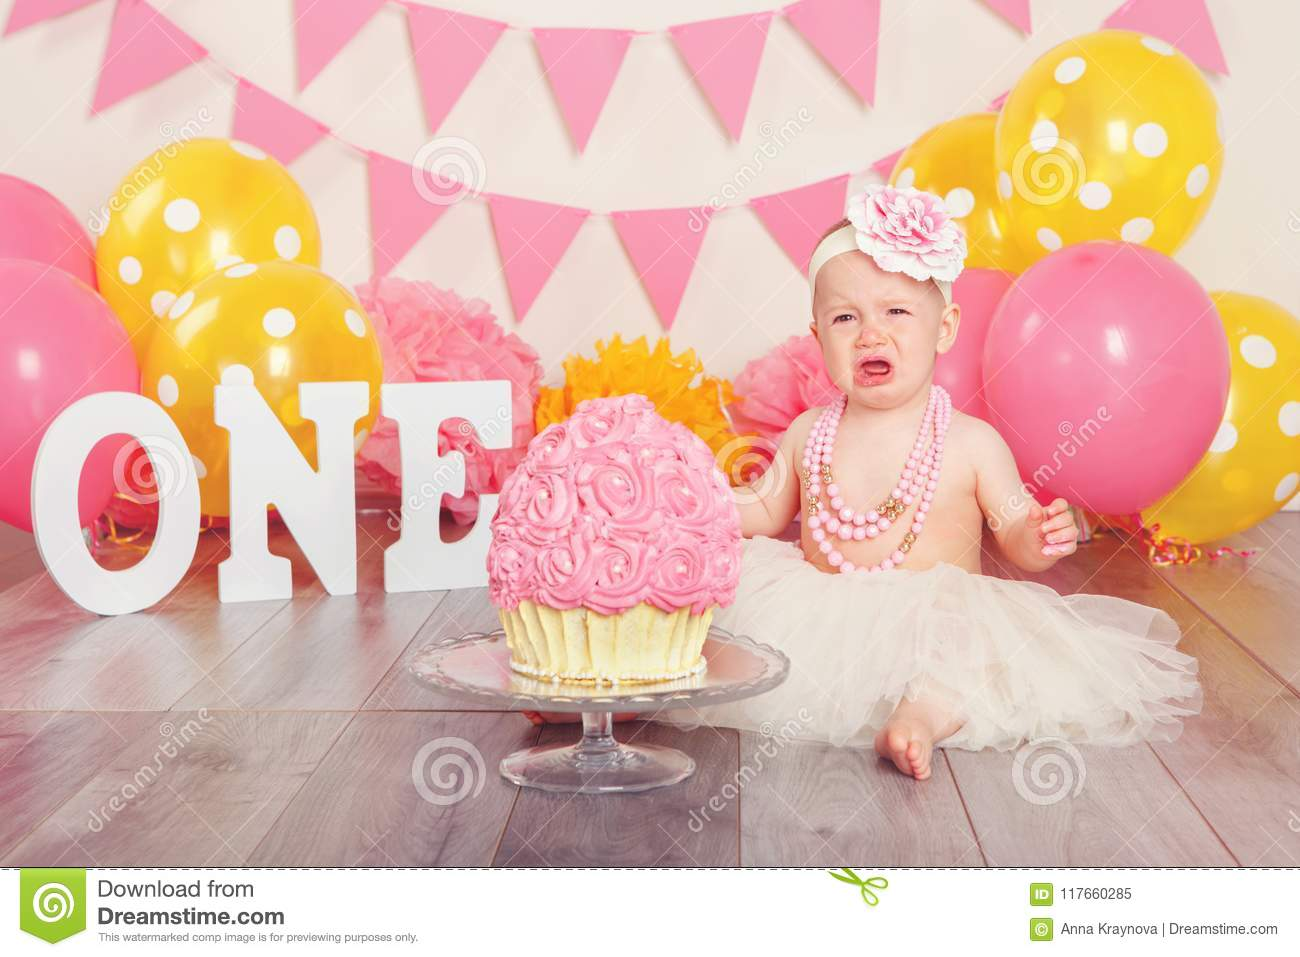 Enjoyable Caucasian Baby Girl In Tutu Tulle Skirt Celebrating Her First Personalised Birthday Cards Cominlily Jamesorg